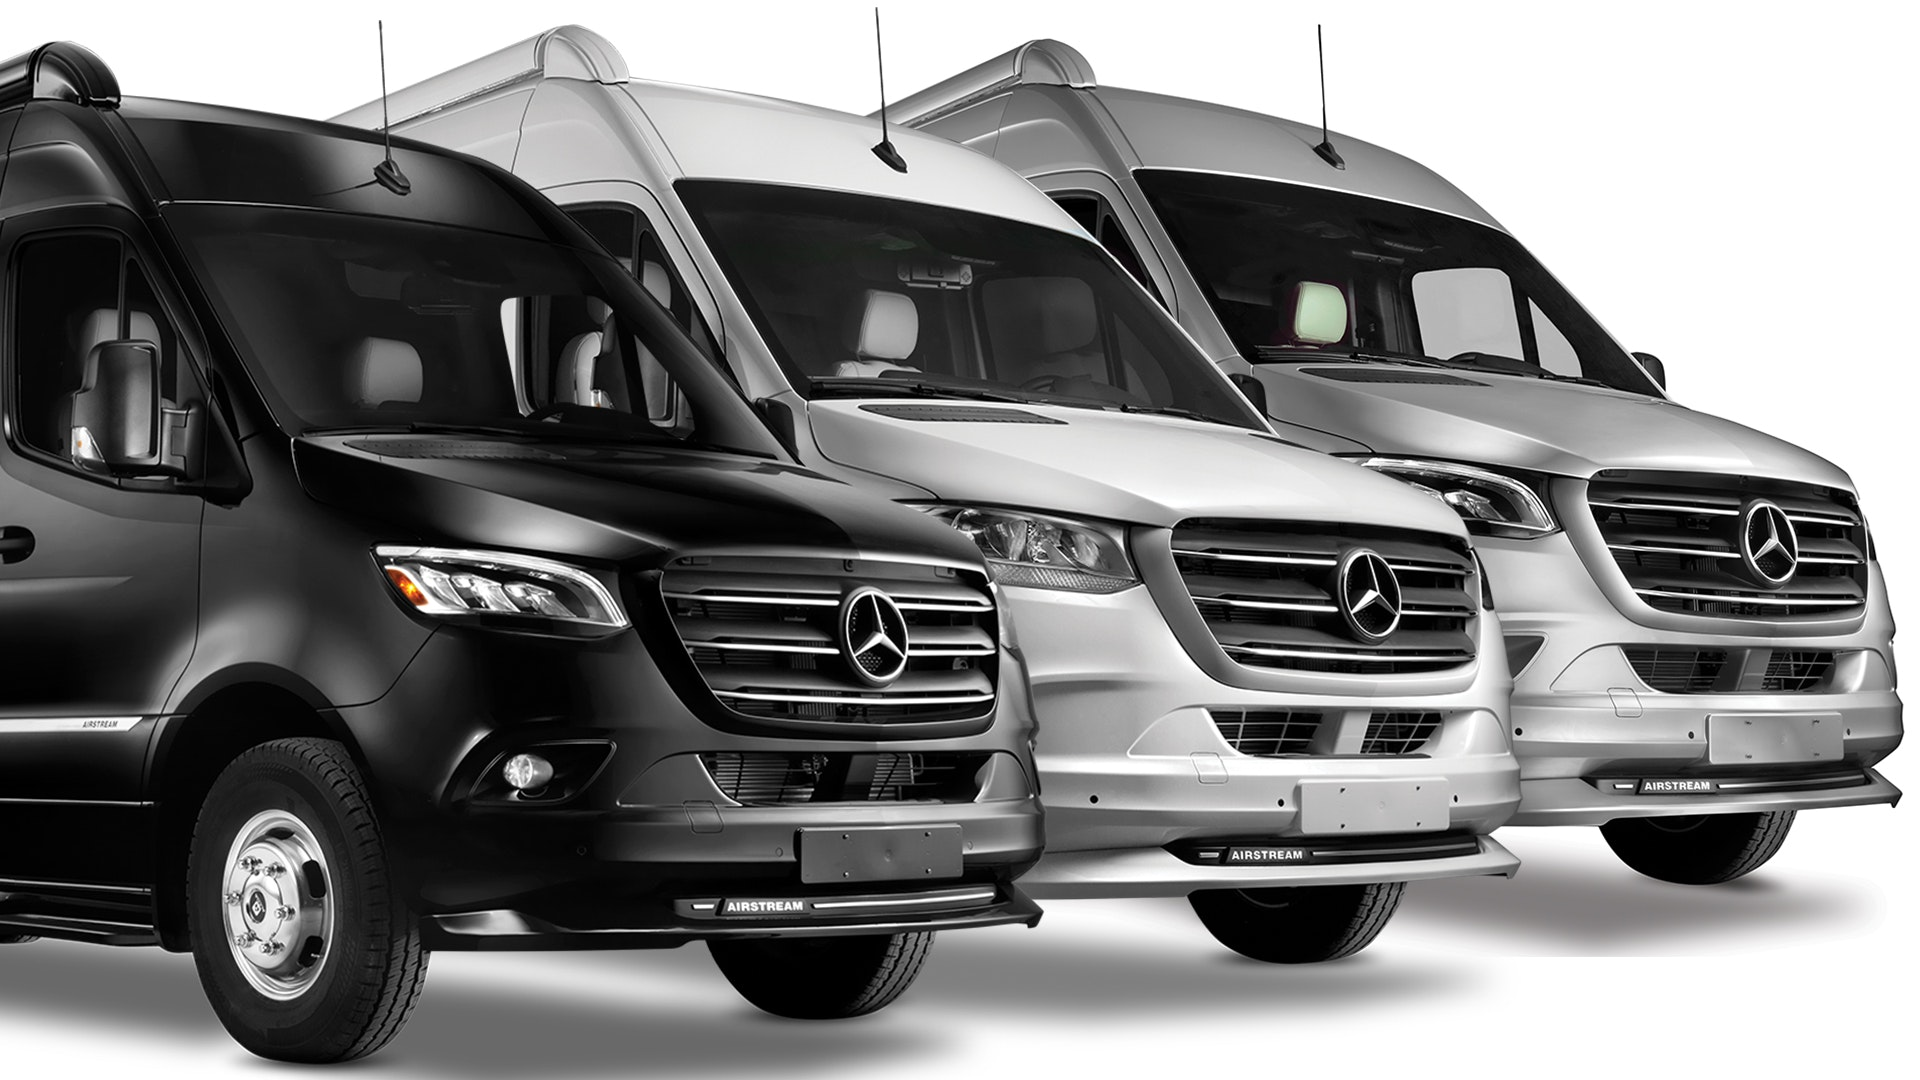 Airstream-Touring-Coaches-Black-Silver-and-White